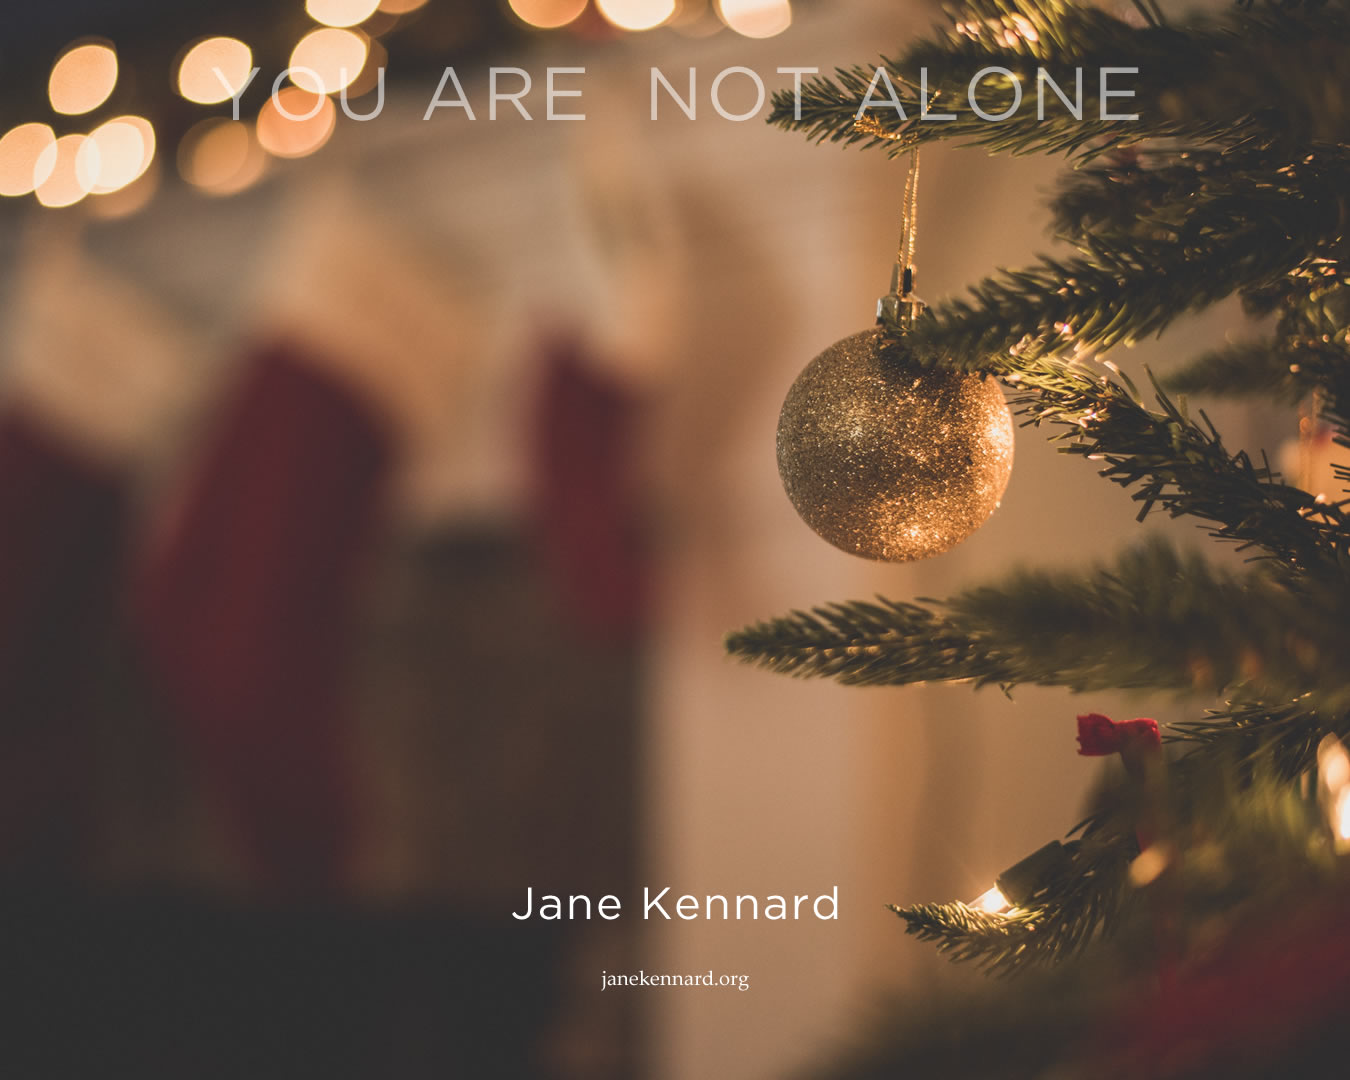 The-Holidays-with-Jane-Kennard-2020-photo-chad-madden-SUTfFCAHV_A-unsplash